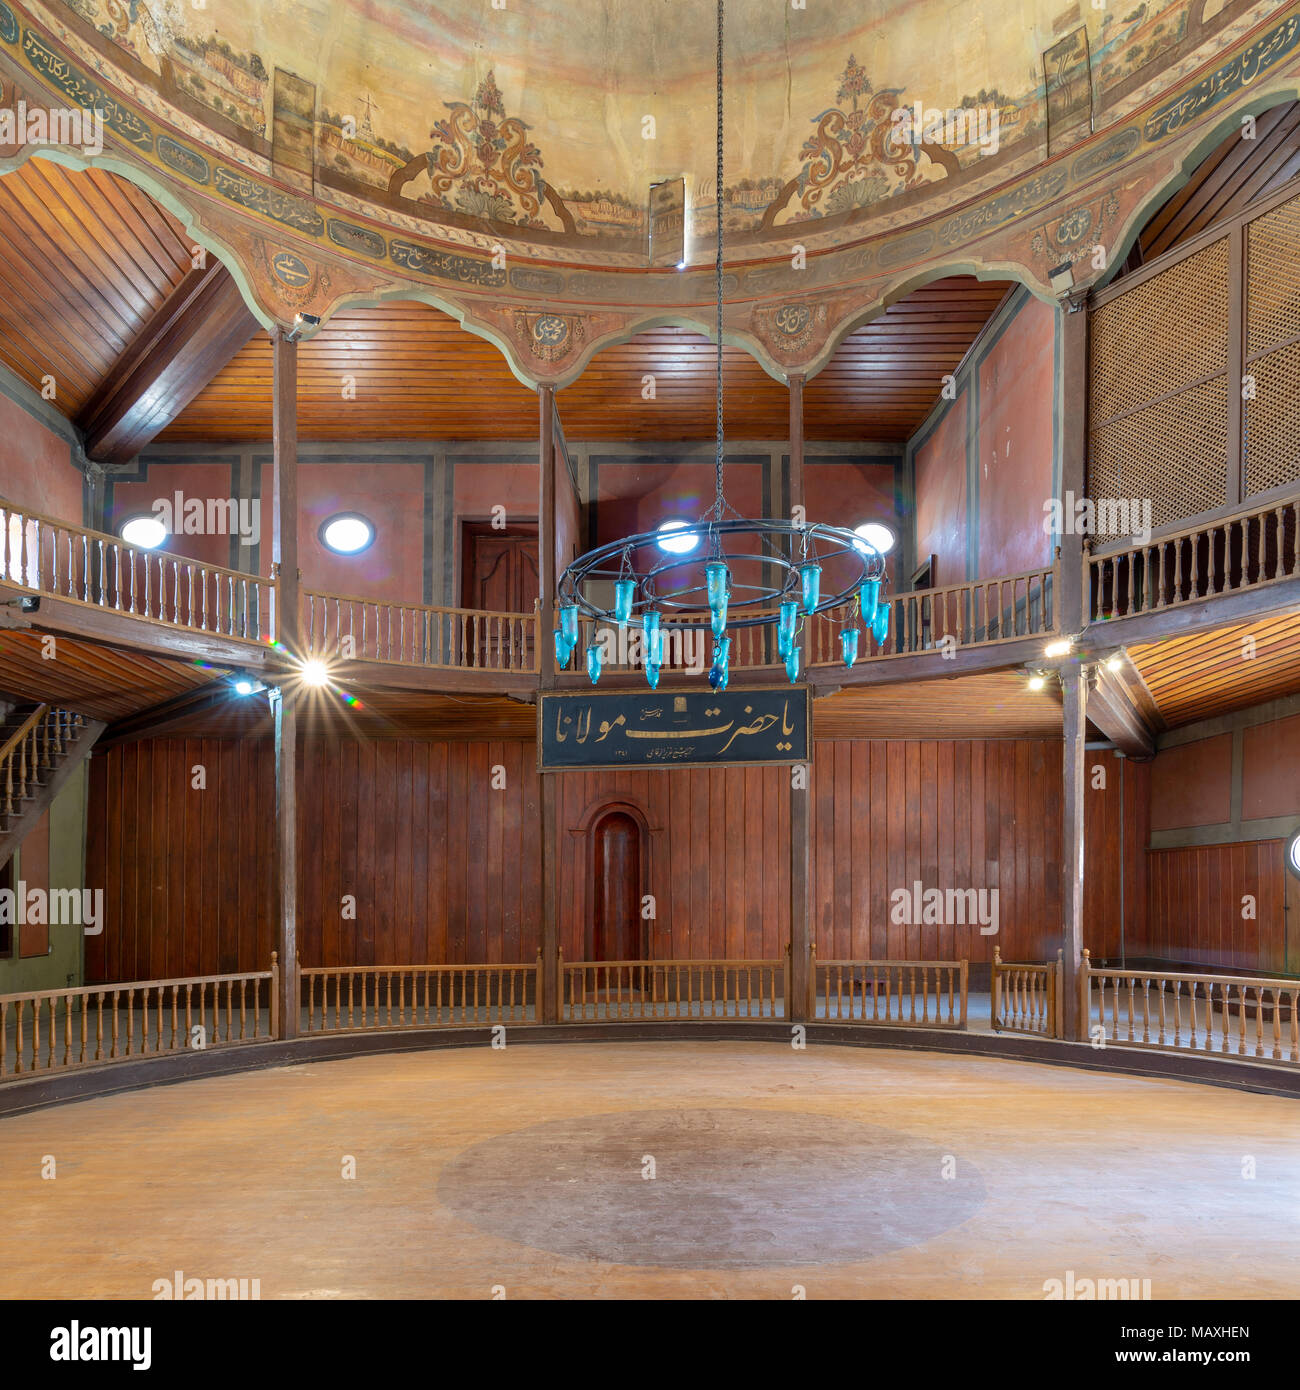 Whirling Dervishes Ceremony hall at the Mevlevi Tekke, a meeting hall for the Sufi order and Whirling Dervishes, Cairo, Egypt - Stock Image